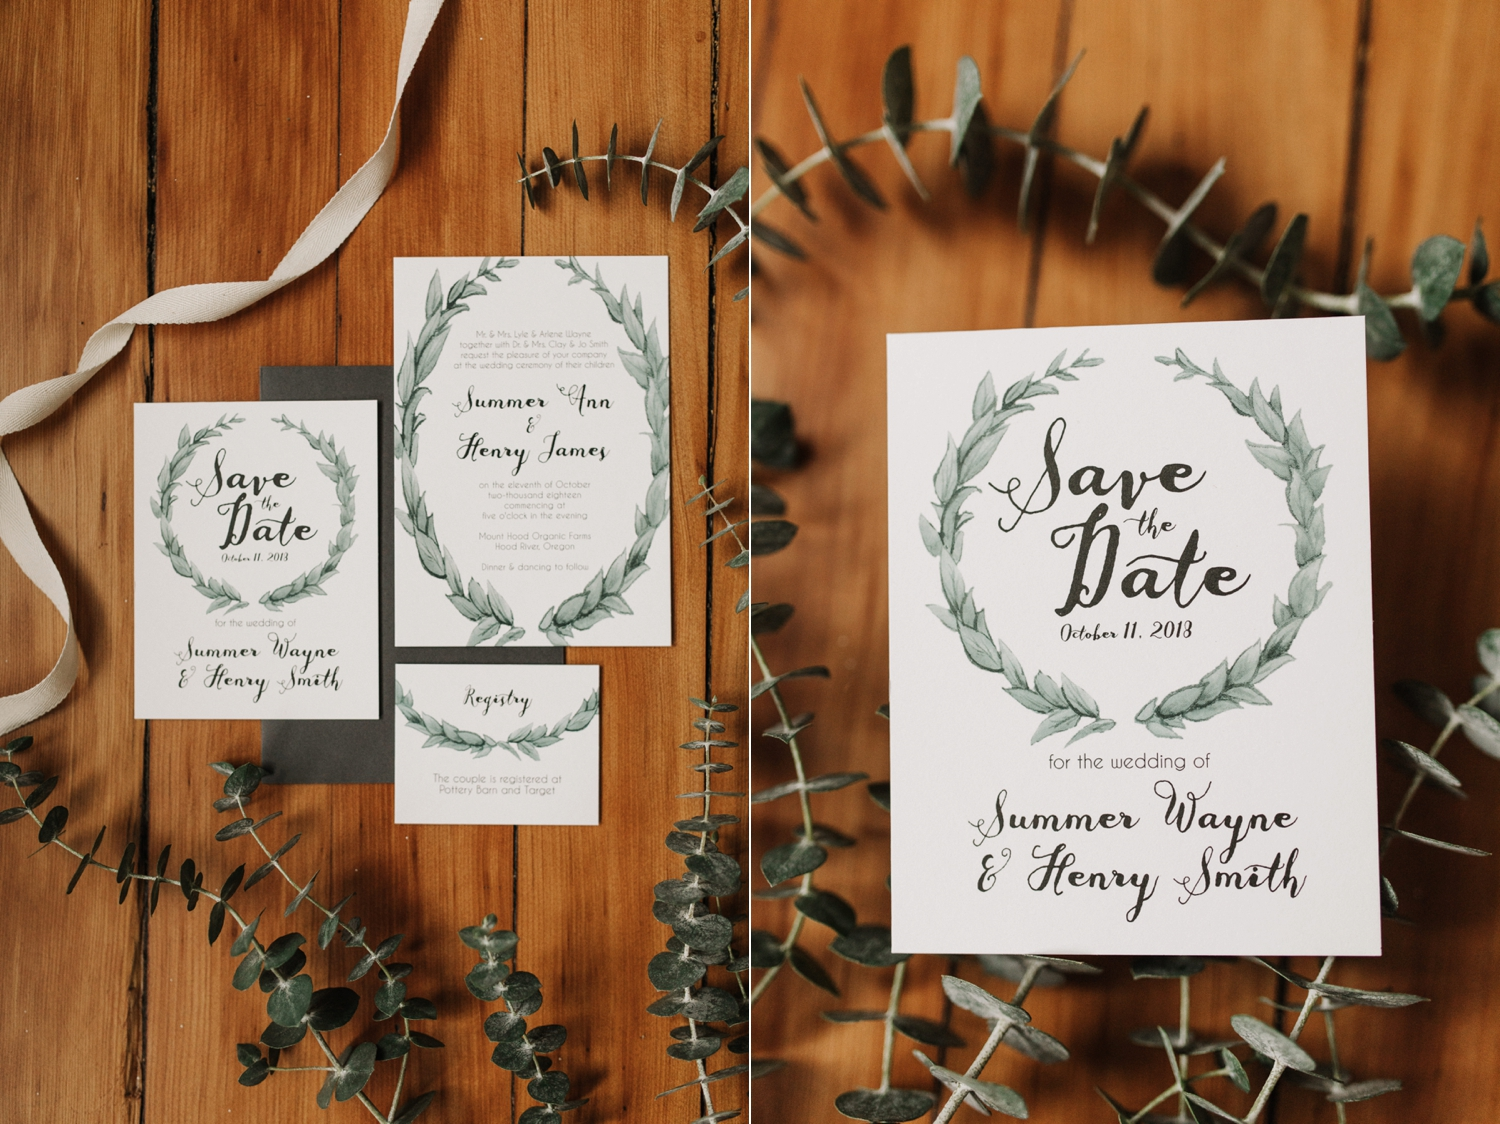 Basic-Invite-Cards-Wedding-Photo-05.JPG